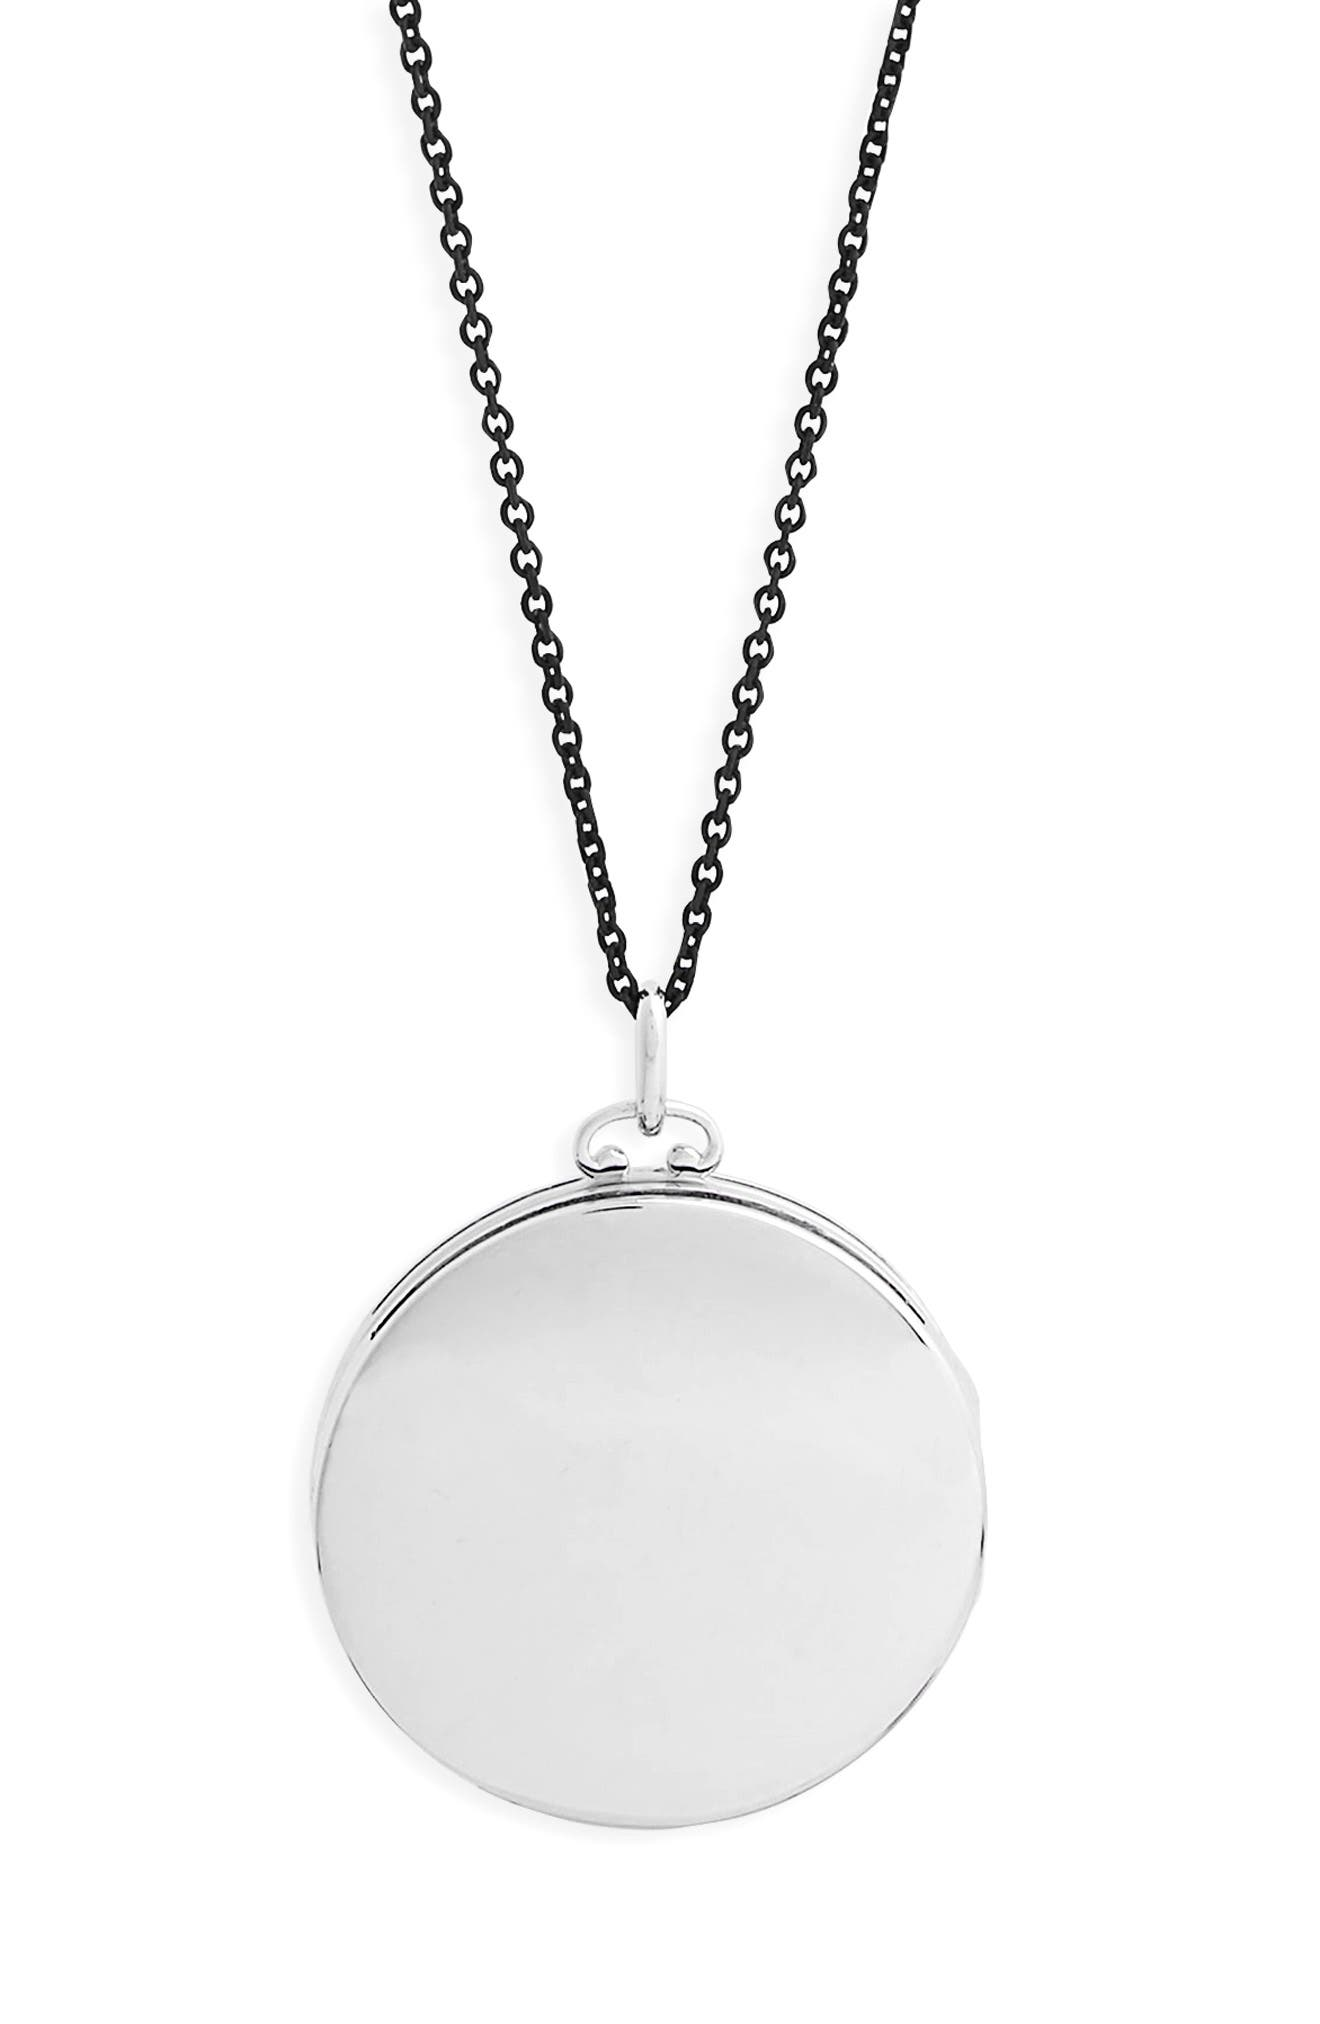 Round Dome Locket Necklace,                             Alternate thumbnail 2, color,                             040